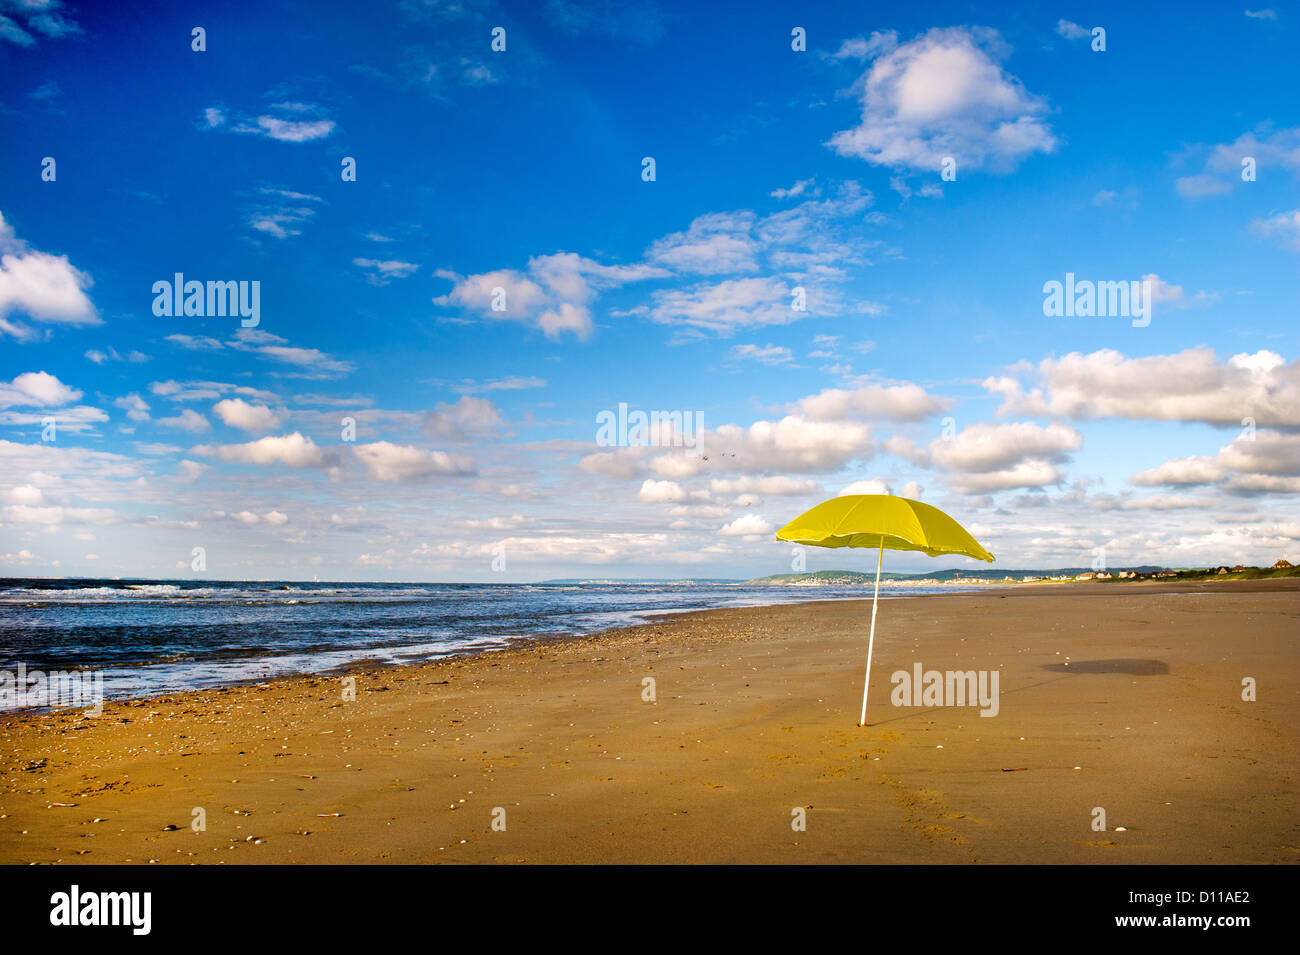 Normandy coast with yellow parasol - Stock Image